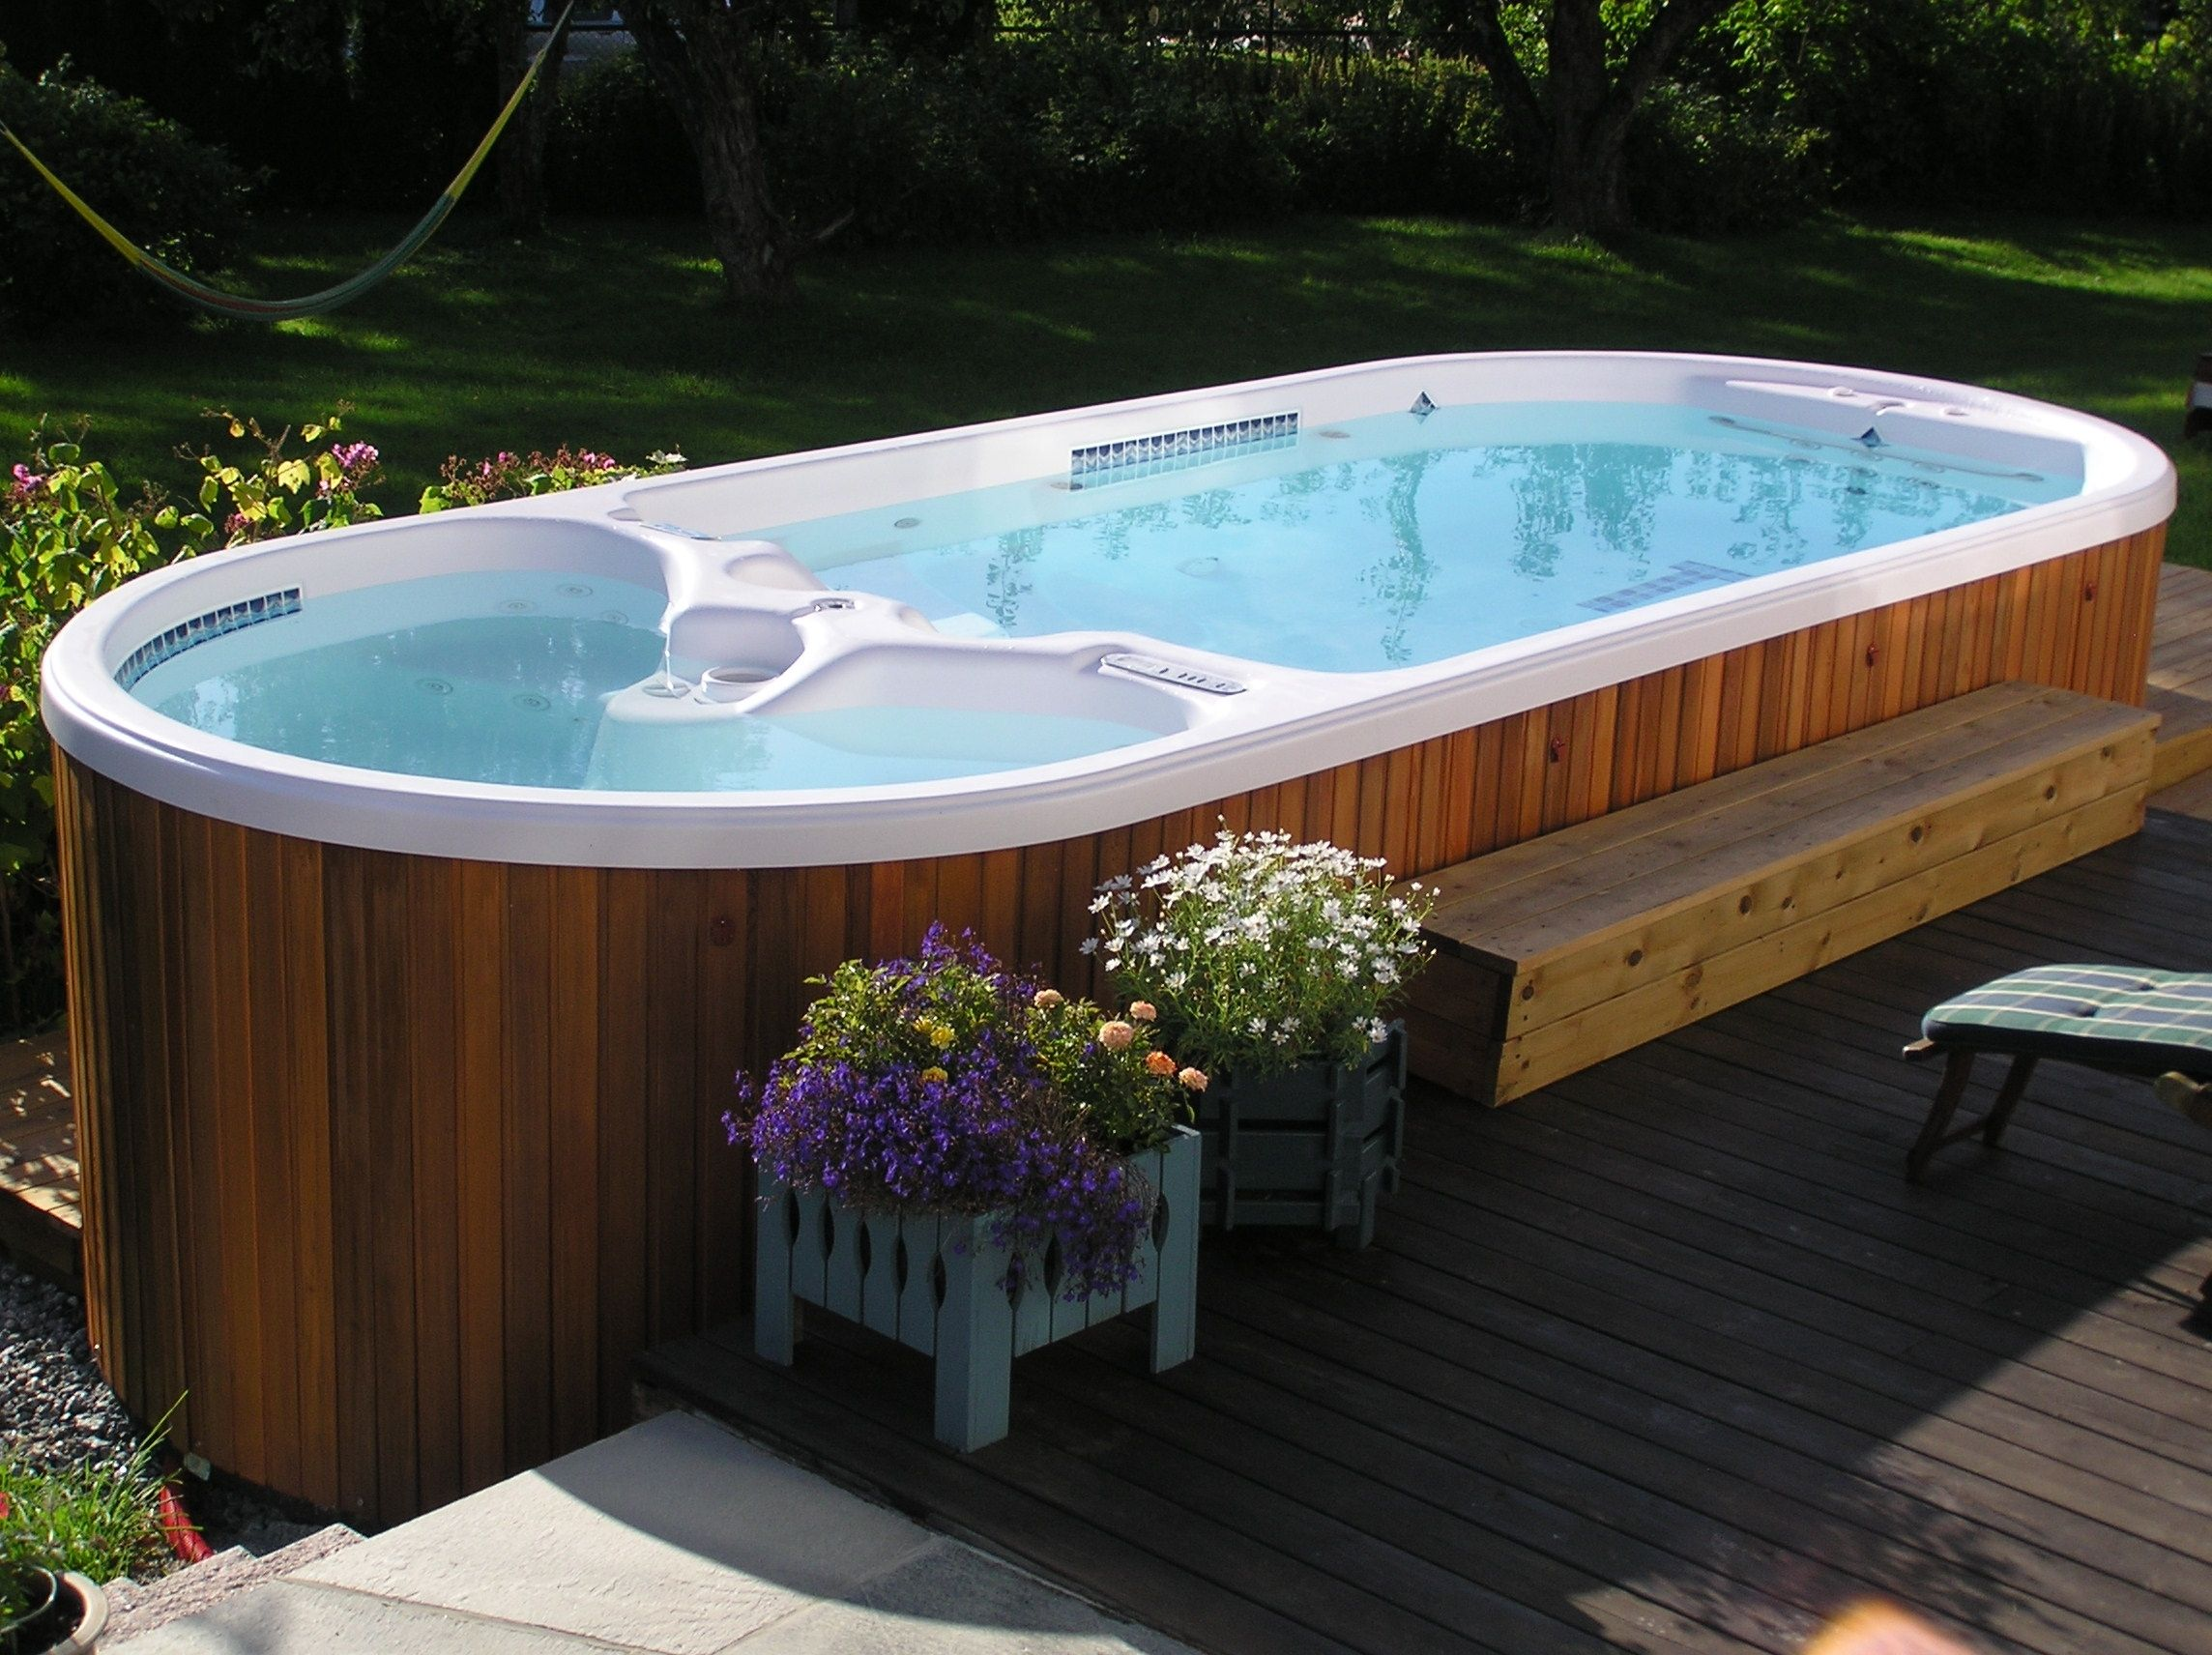 A Swim Spa And Hot Tub In One Yes Please Hot Tub Backyard Outdoor Spas Hot Tubs Hot Tub Landscaping